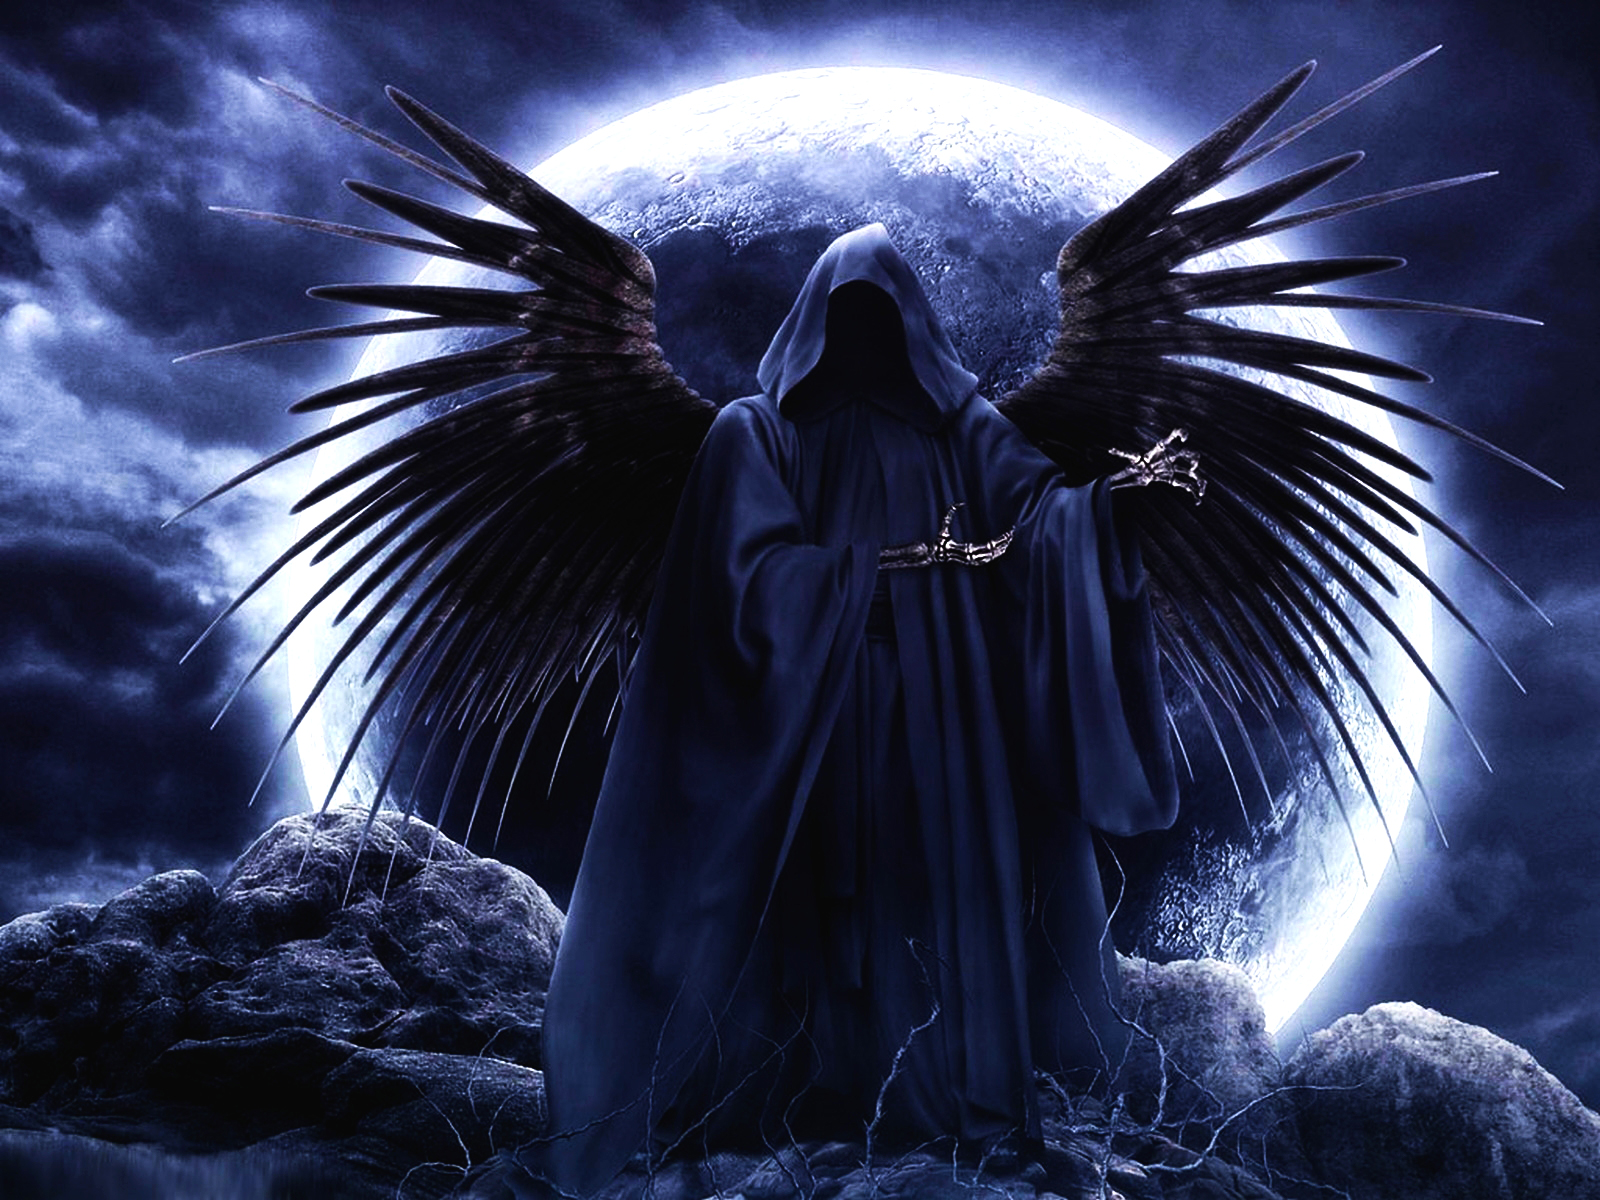 Dark - Grim Reaper  - Grim - Reaper - Death - Dark - Death Angel Wallpaper